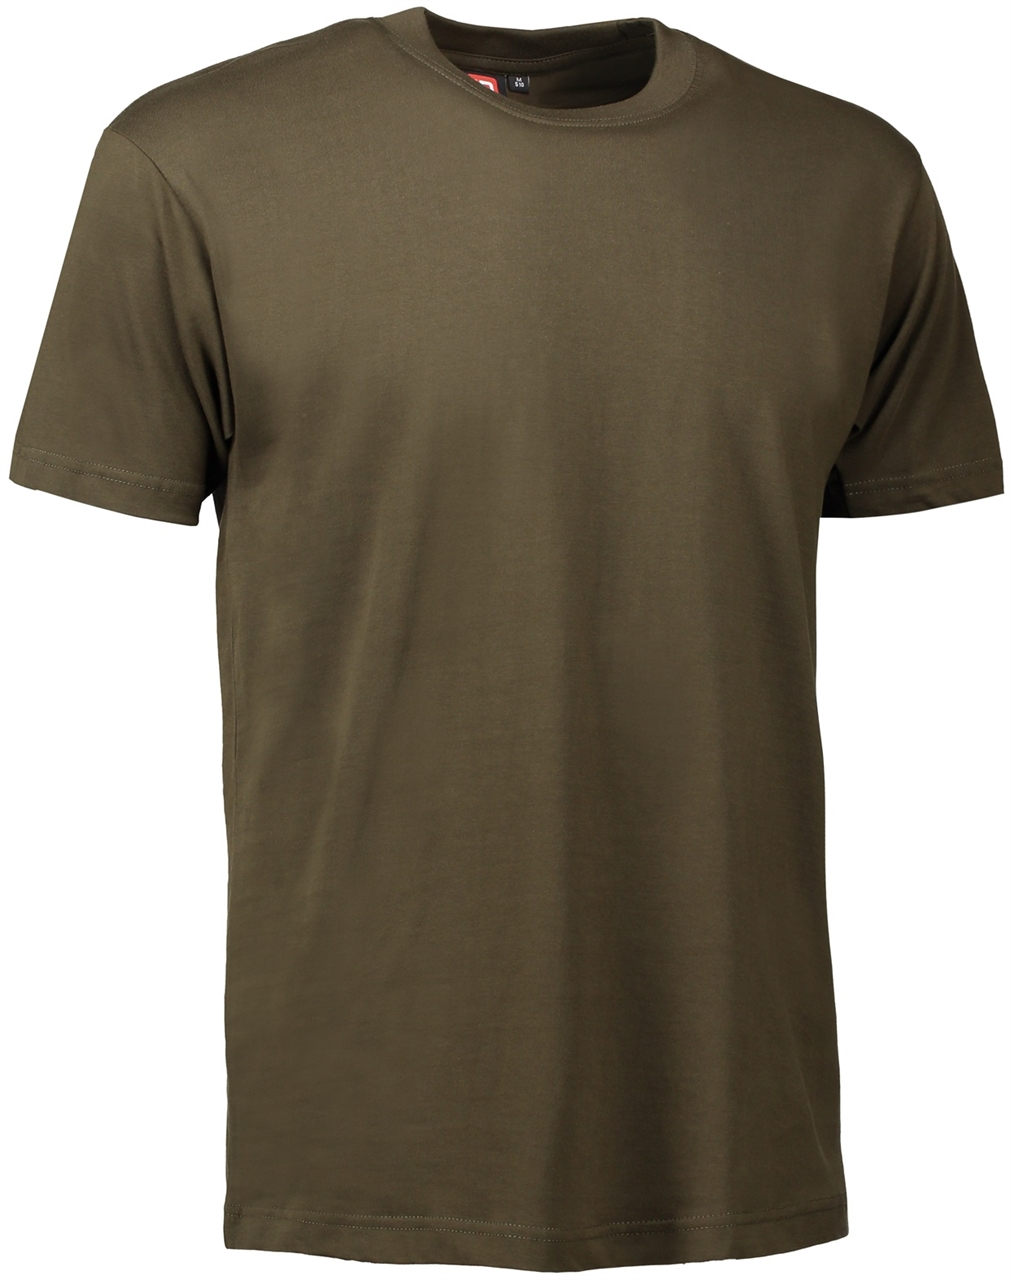 Picture of T-time t-shirt 0510 Olive